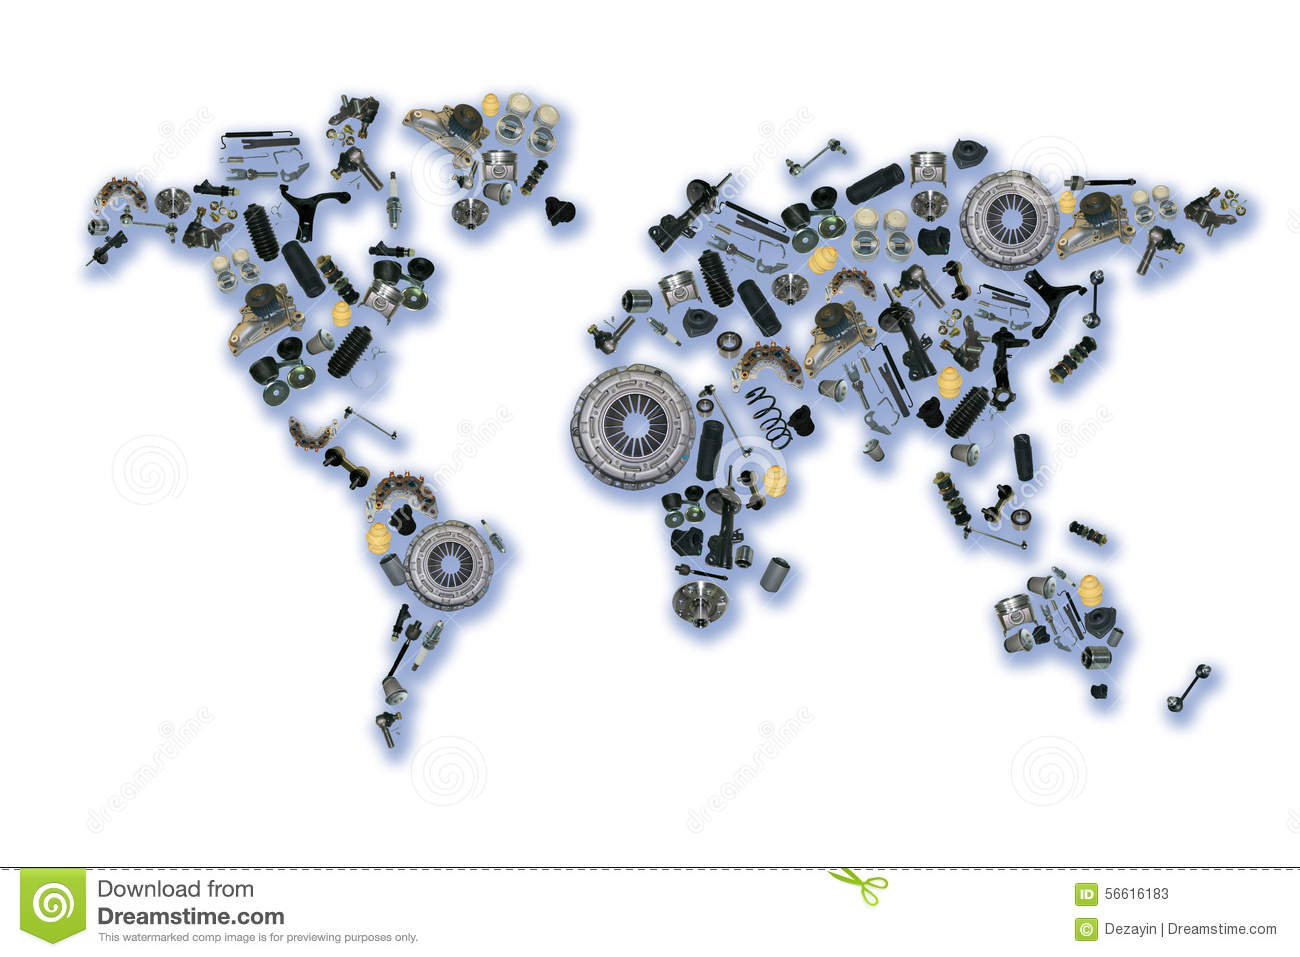 World map of the spare parts for shop auto stock image image of world map of the spare parts for shop auto gumiabroncs Gallery